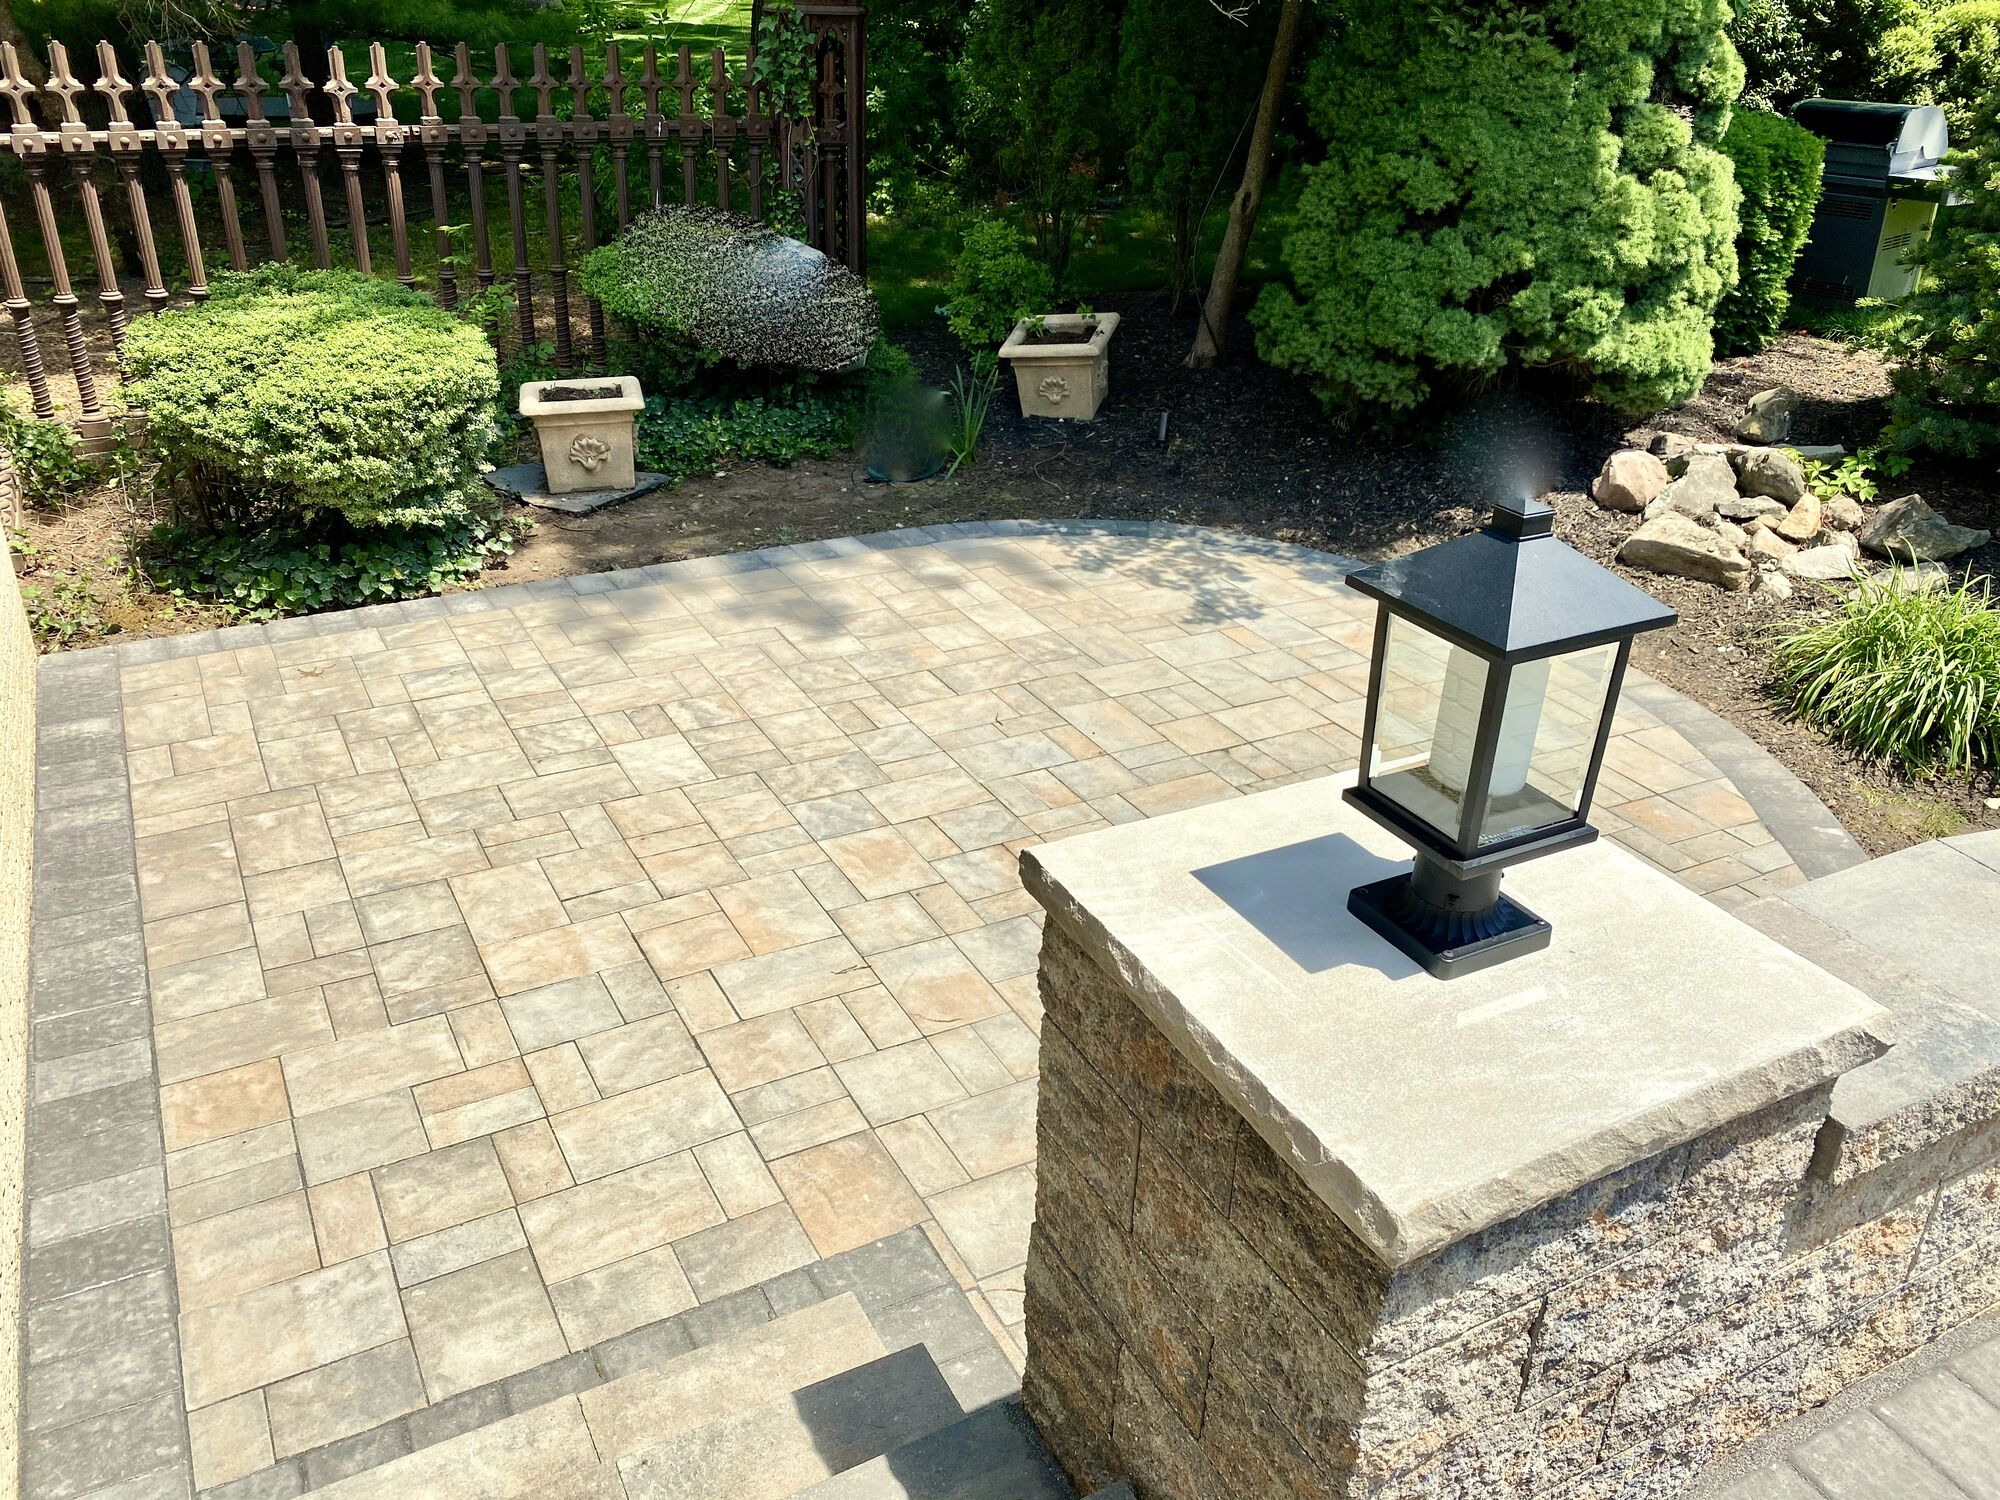 Cambridge Paver Patio, Matching Piers and Lighting in Oradell, Bergen County NJ